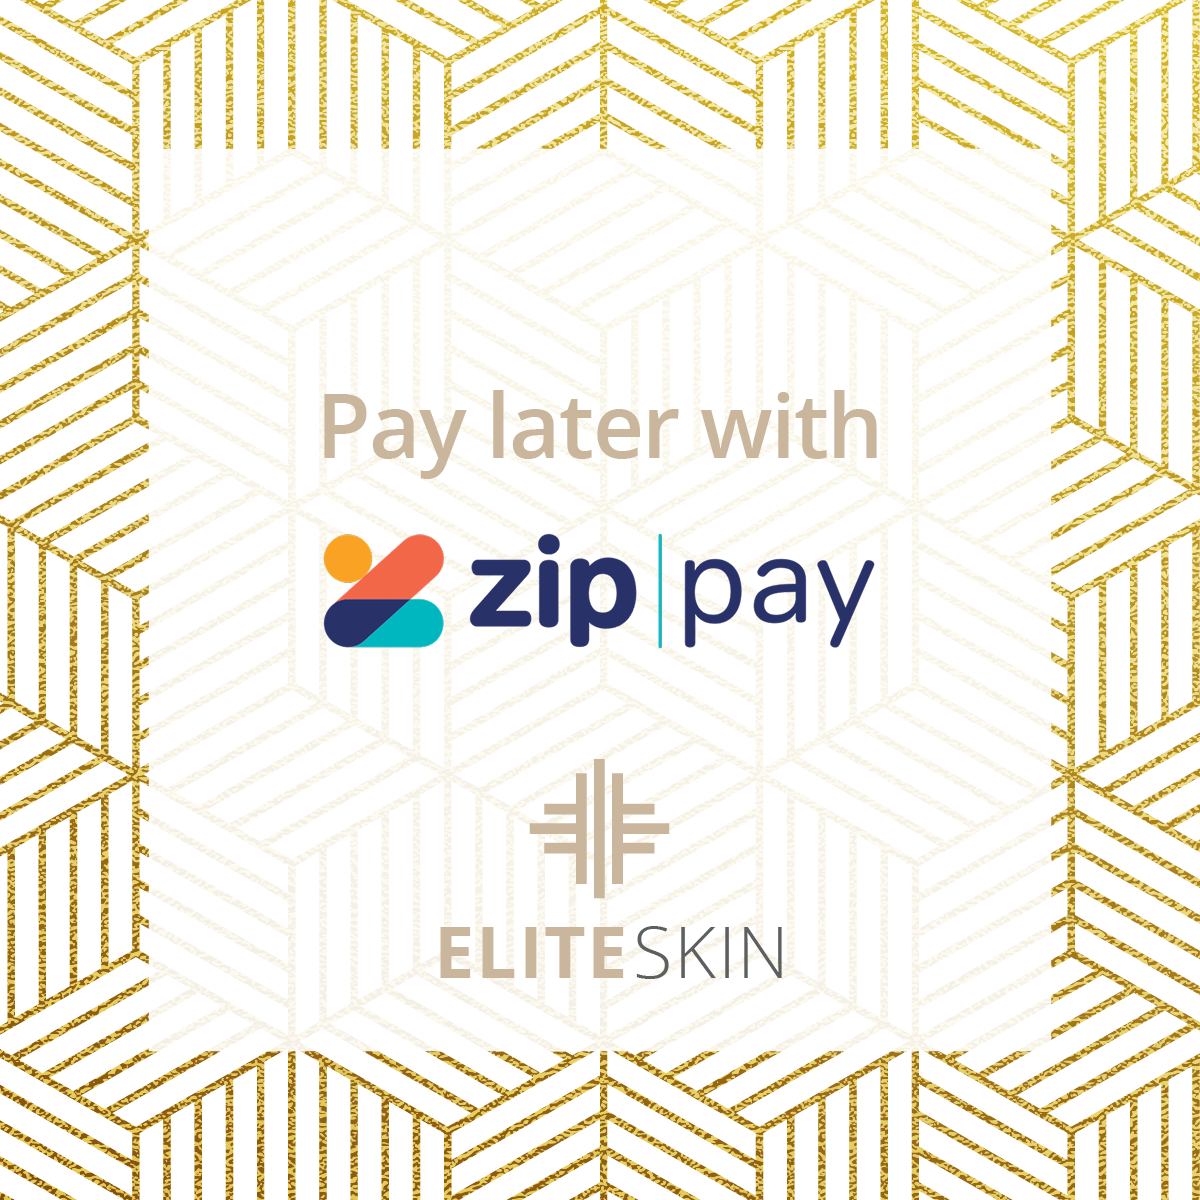 Elite-Skin-Zip-Pay